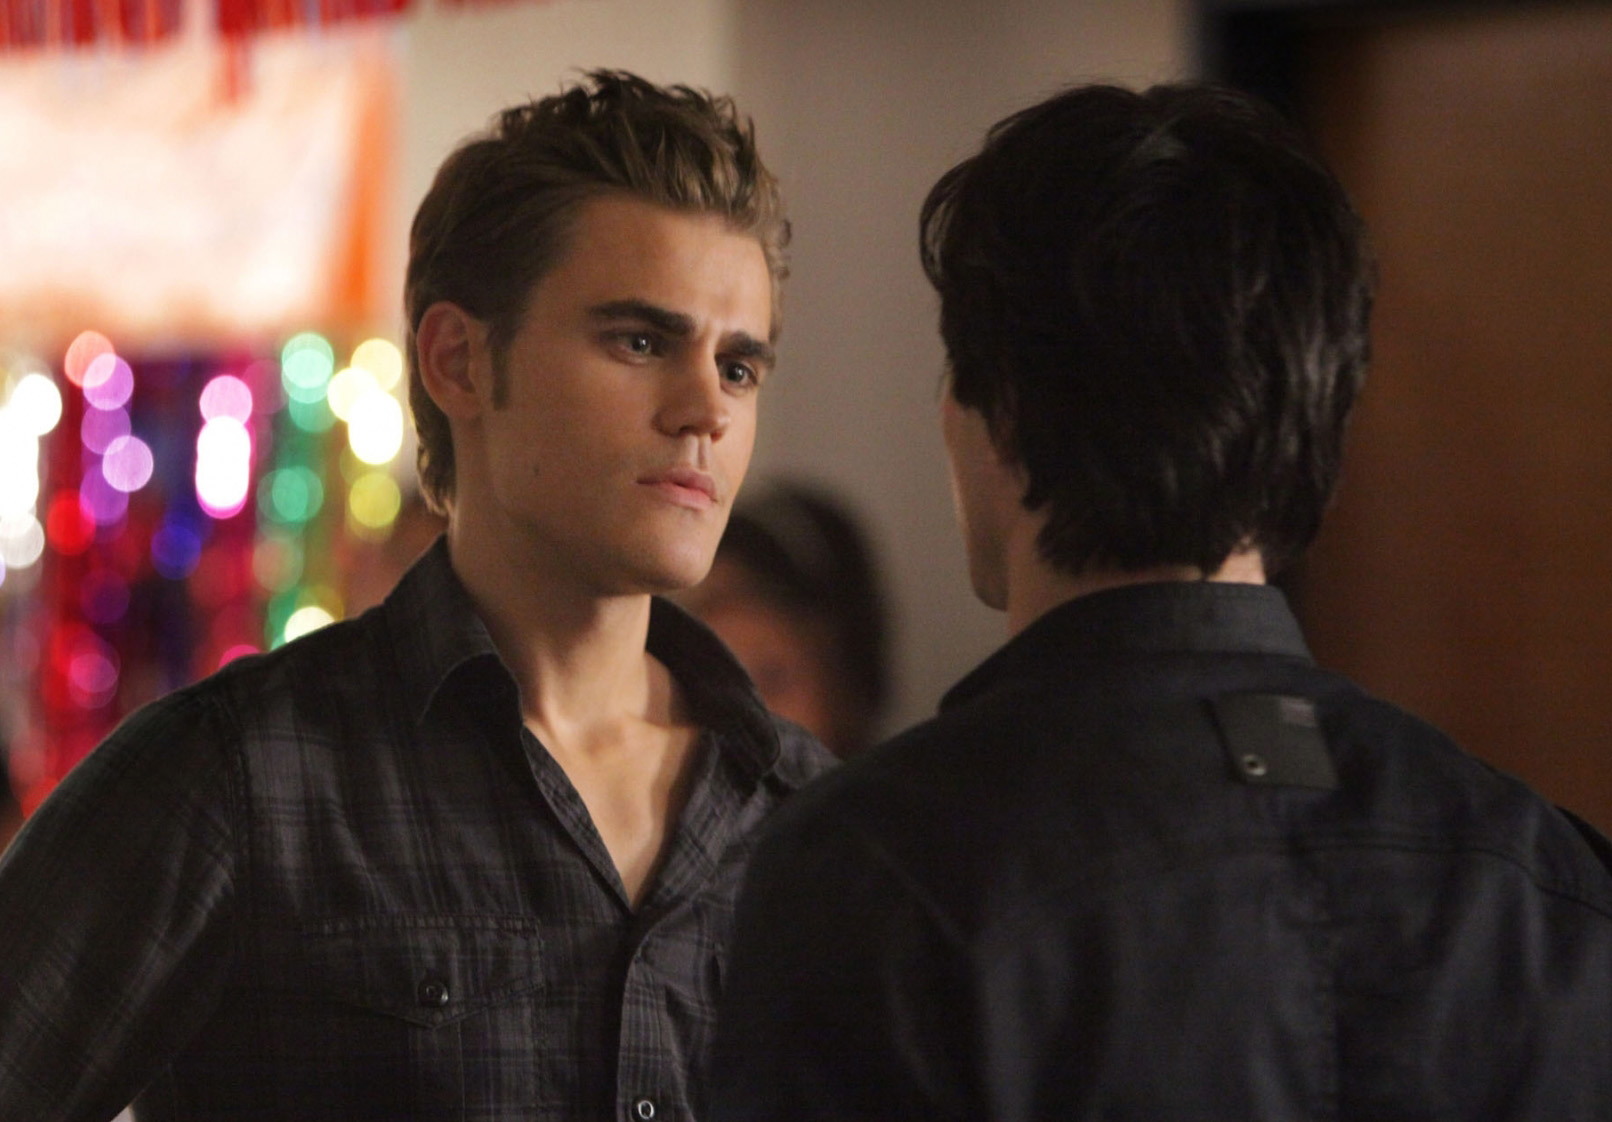 File:Vampire-diaries-season-2-brave-new-world-promo-pics-13.jpg